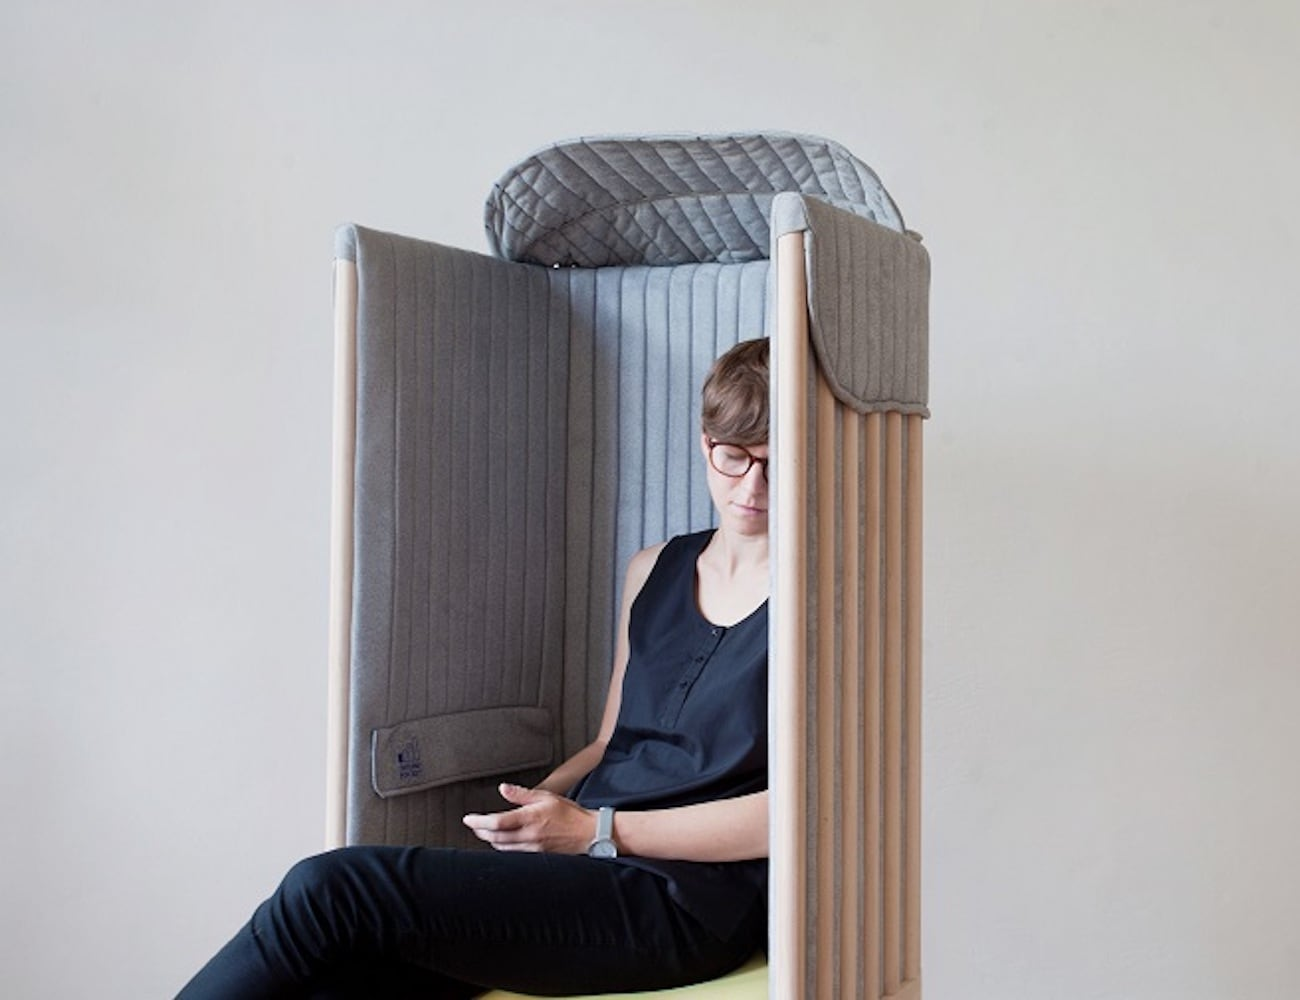 Offline Seat Signal-Blocking Office Chair is the Wi-Fi escape zone you didn't know you needed